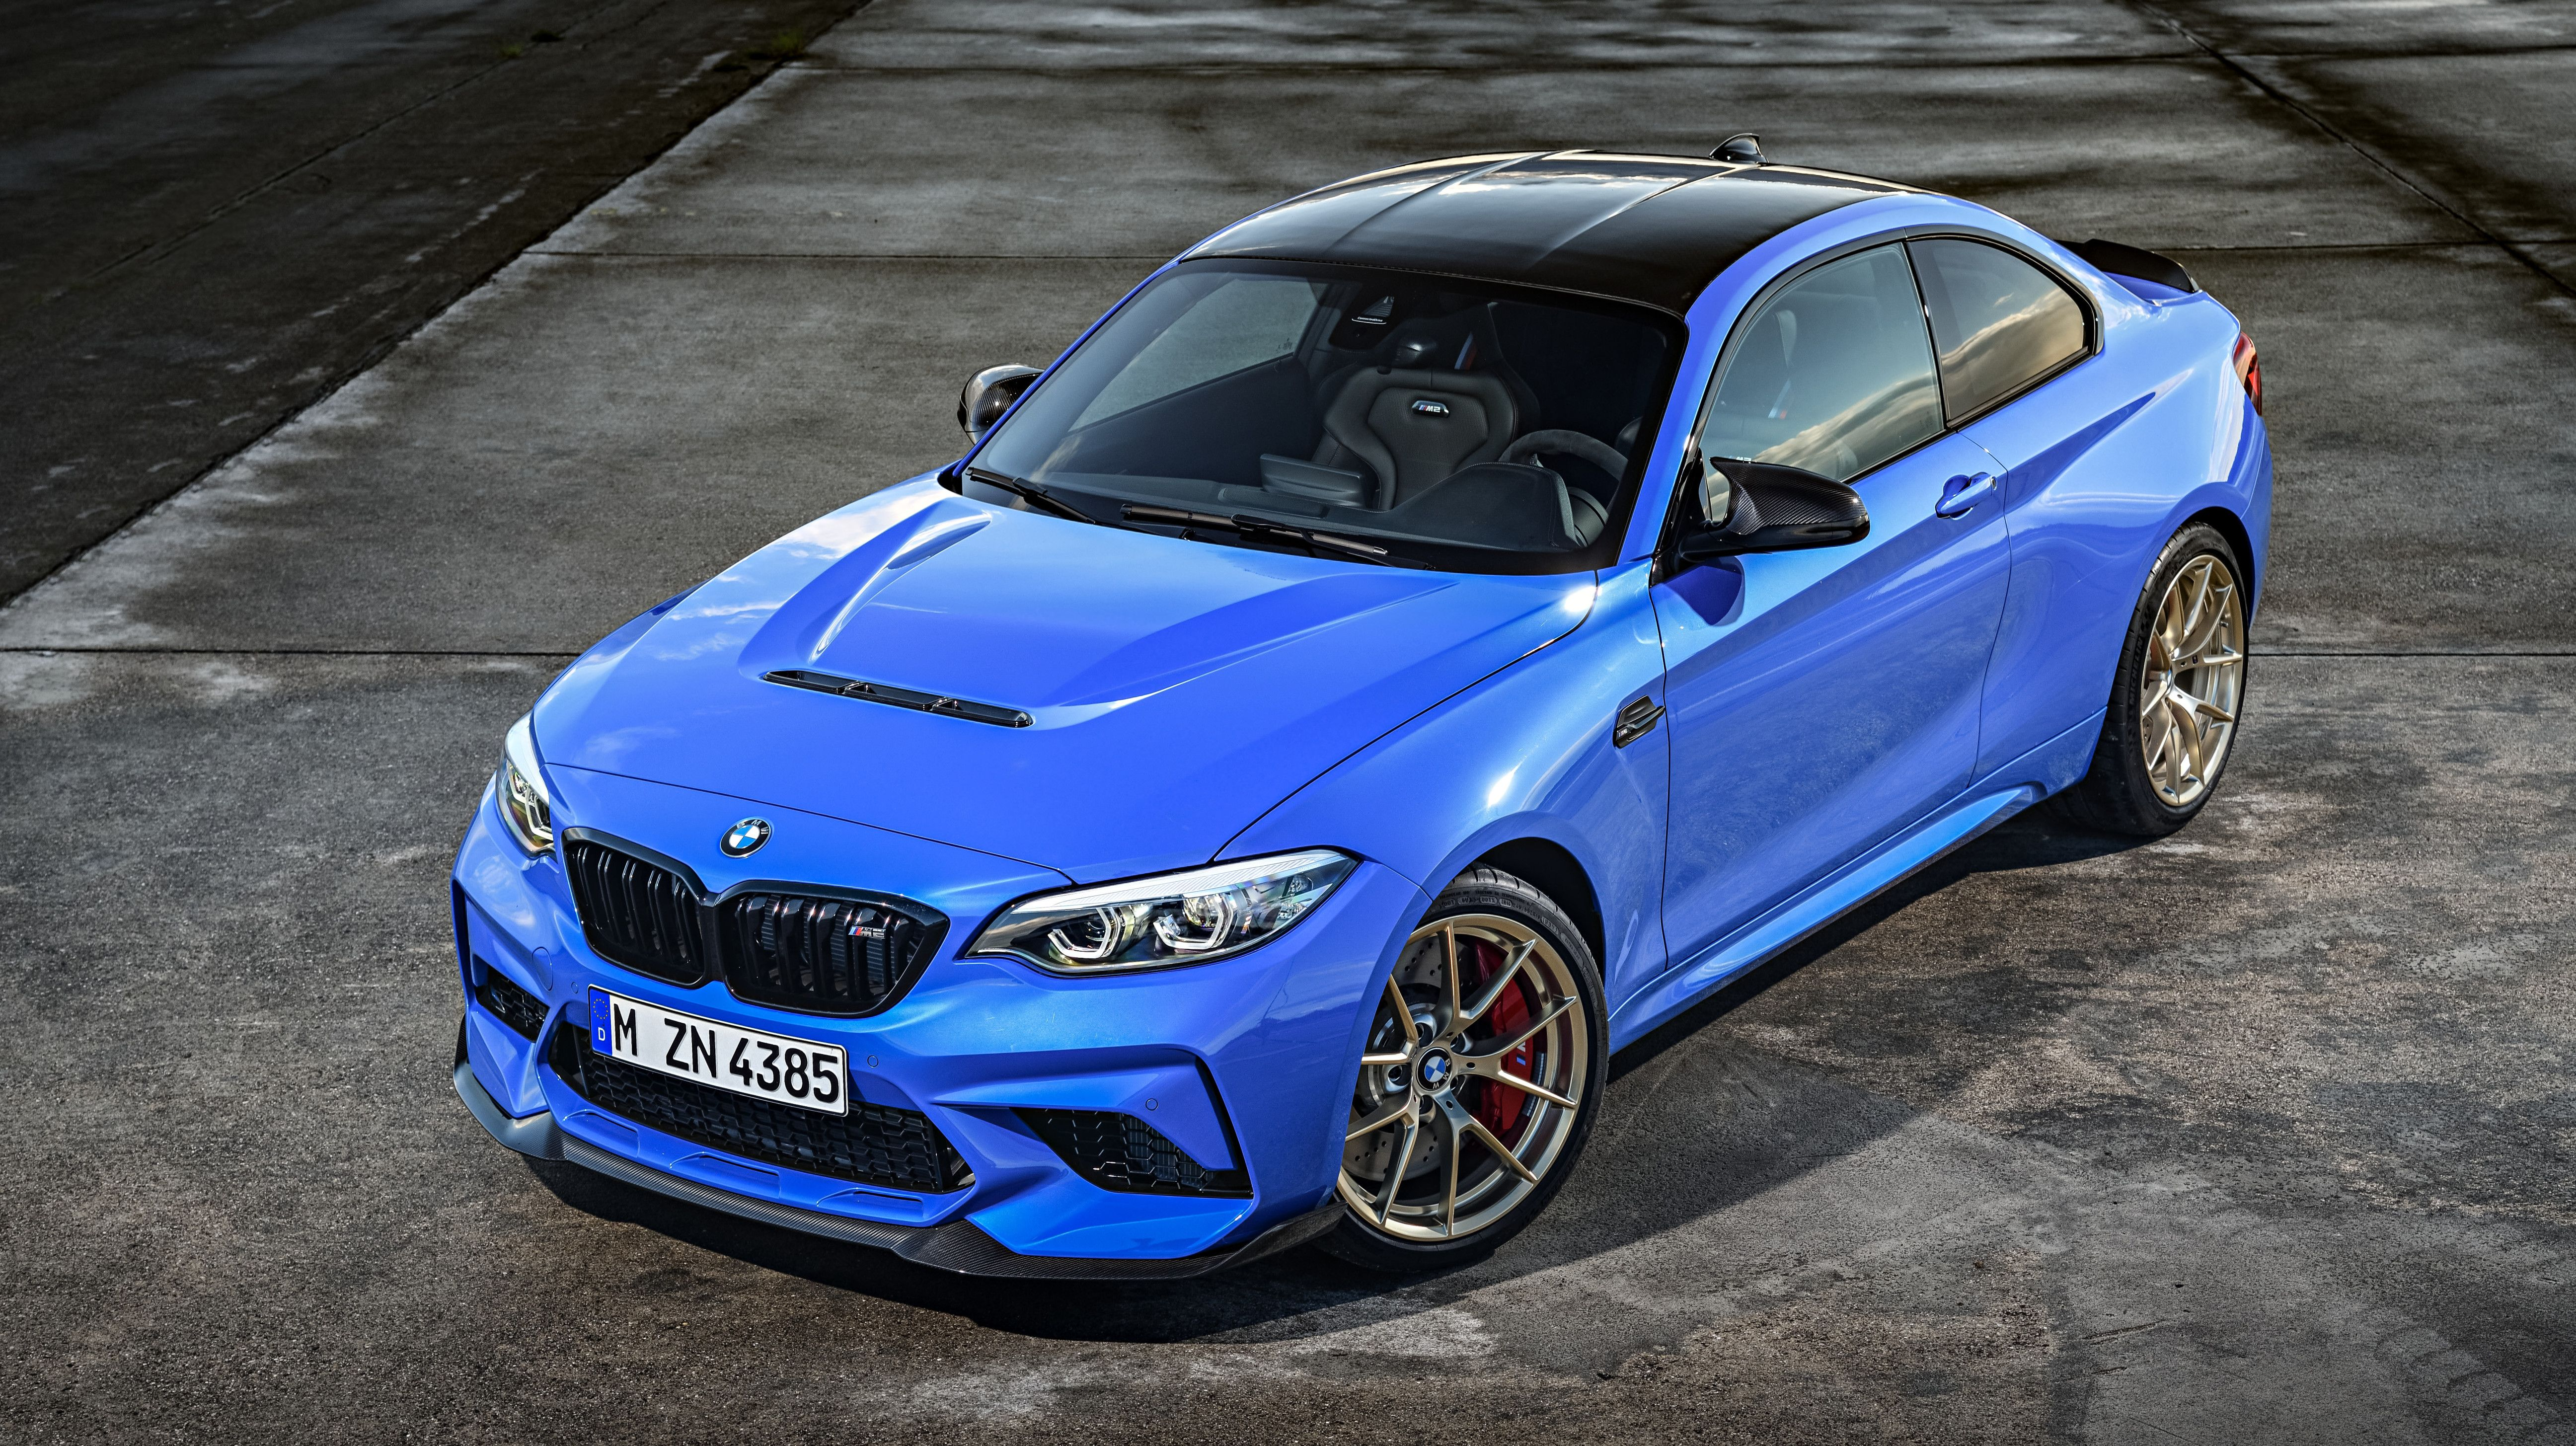 The 2020 Bmw M2 Cs Dethrones The M2 Competition In Almost Every